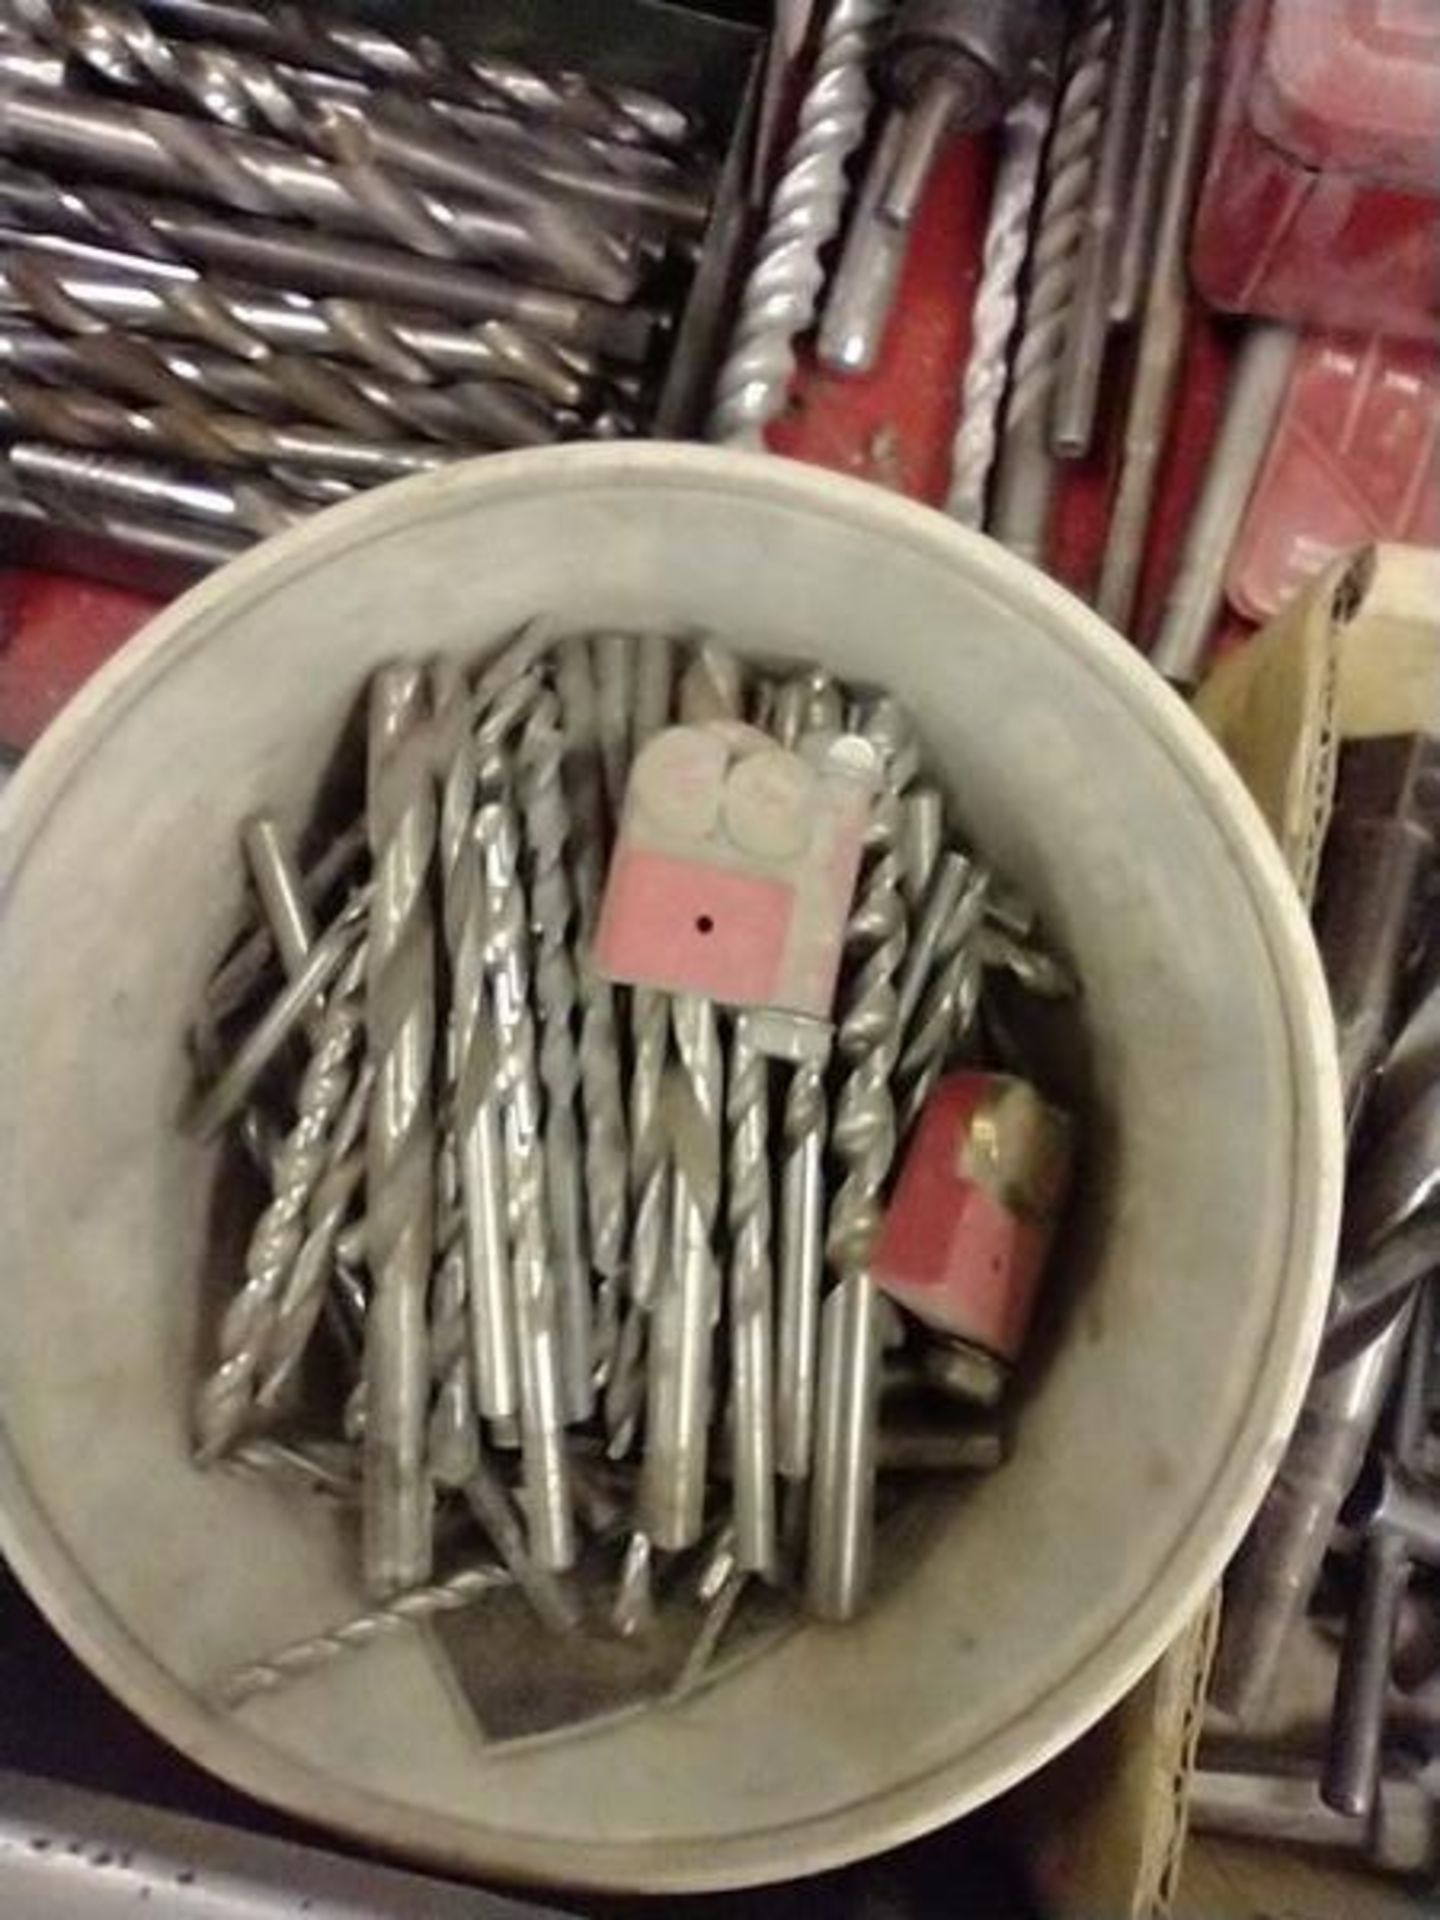 LOT OF DRILL BITS, DRILL KEYS AND MISC - Image 4 of 7